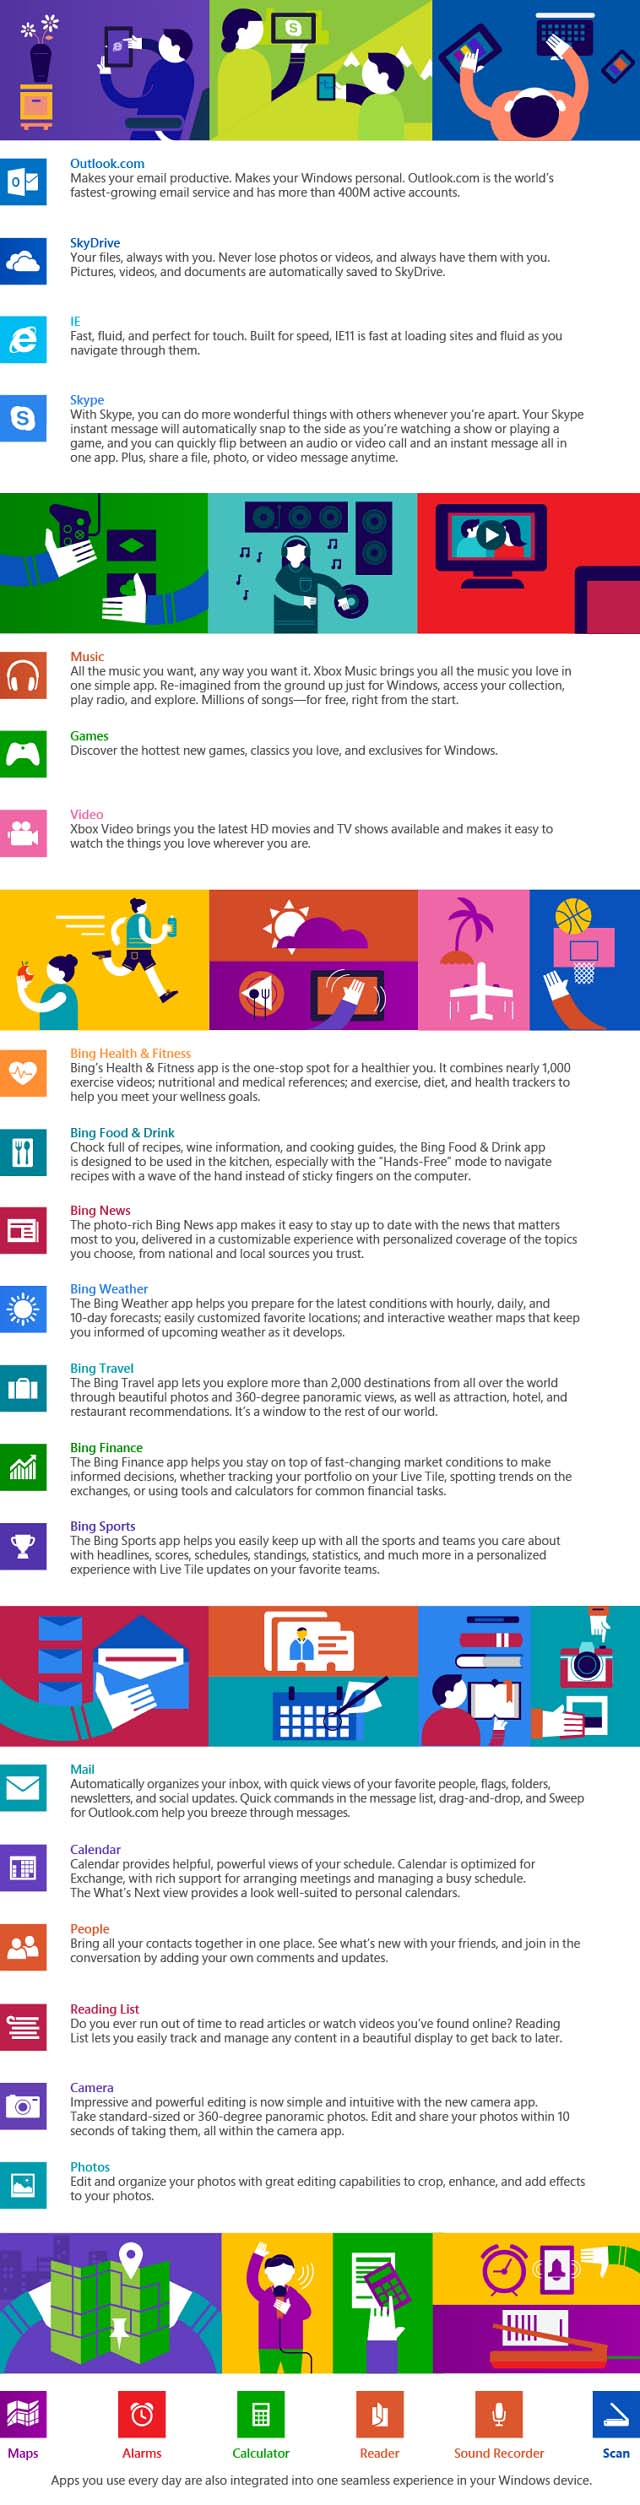 Microsoft outlined apps and services integrated in Windows 8.1